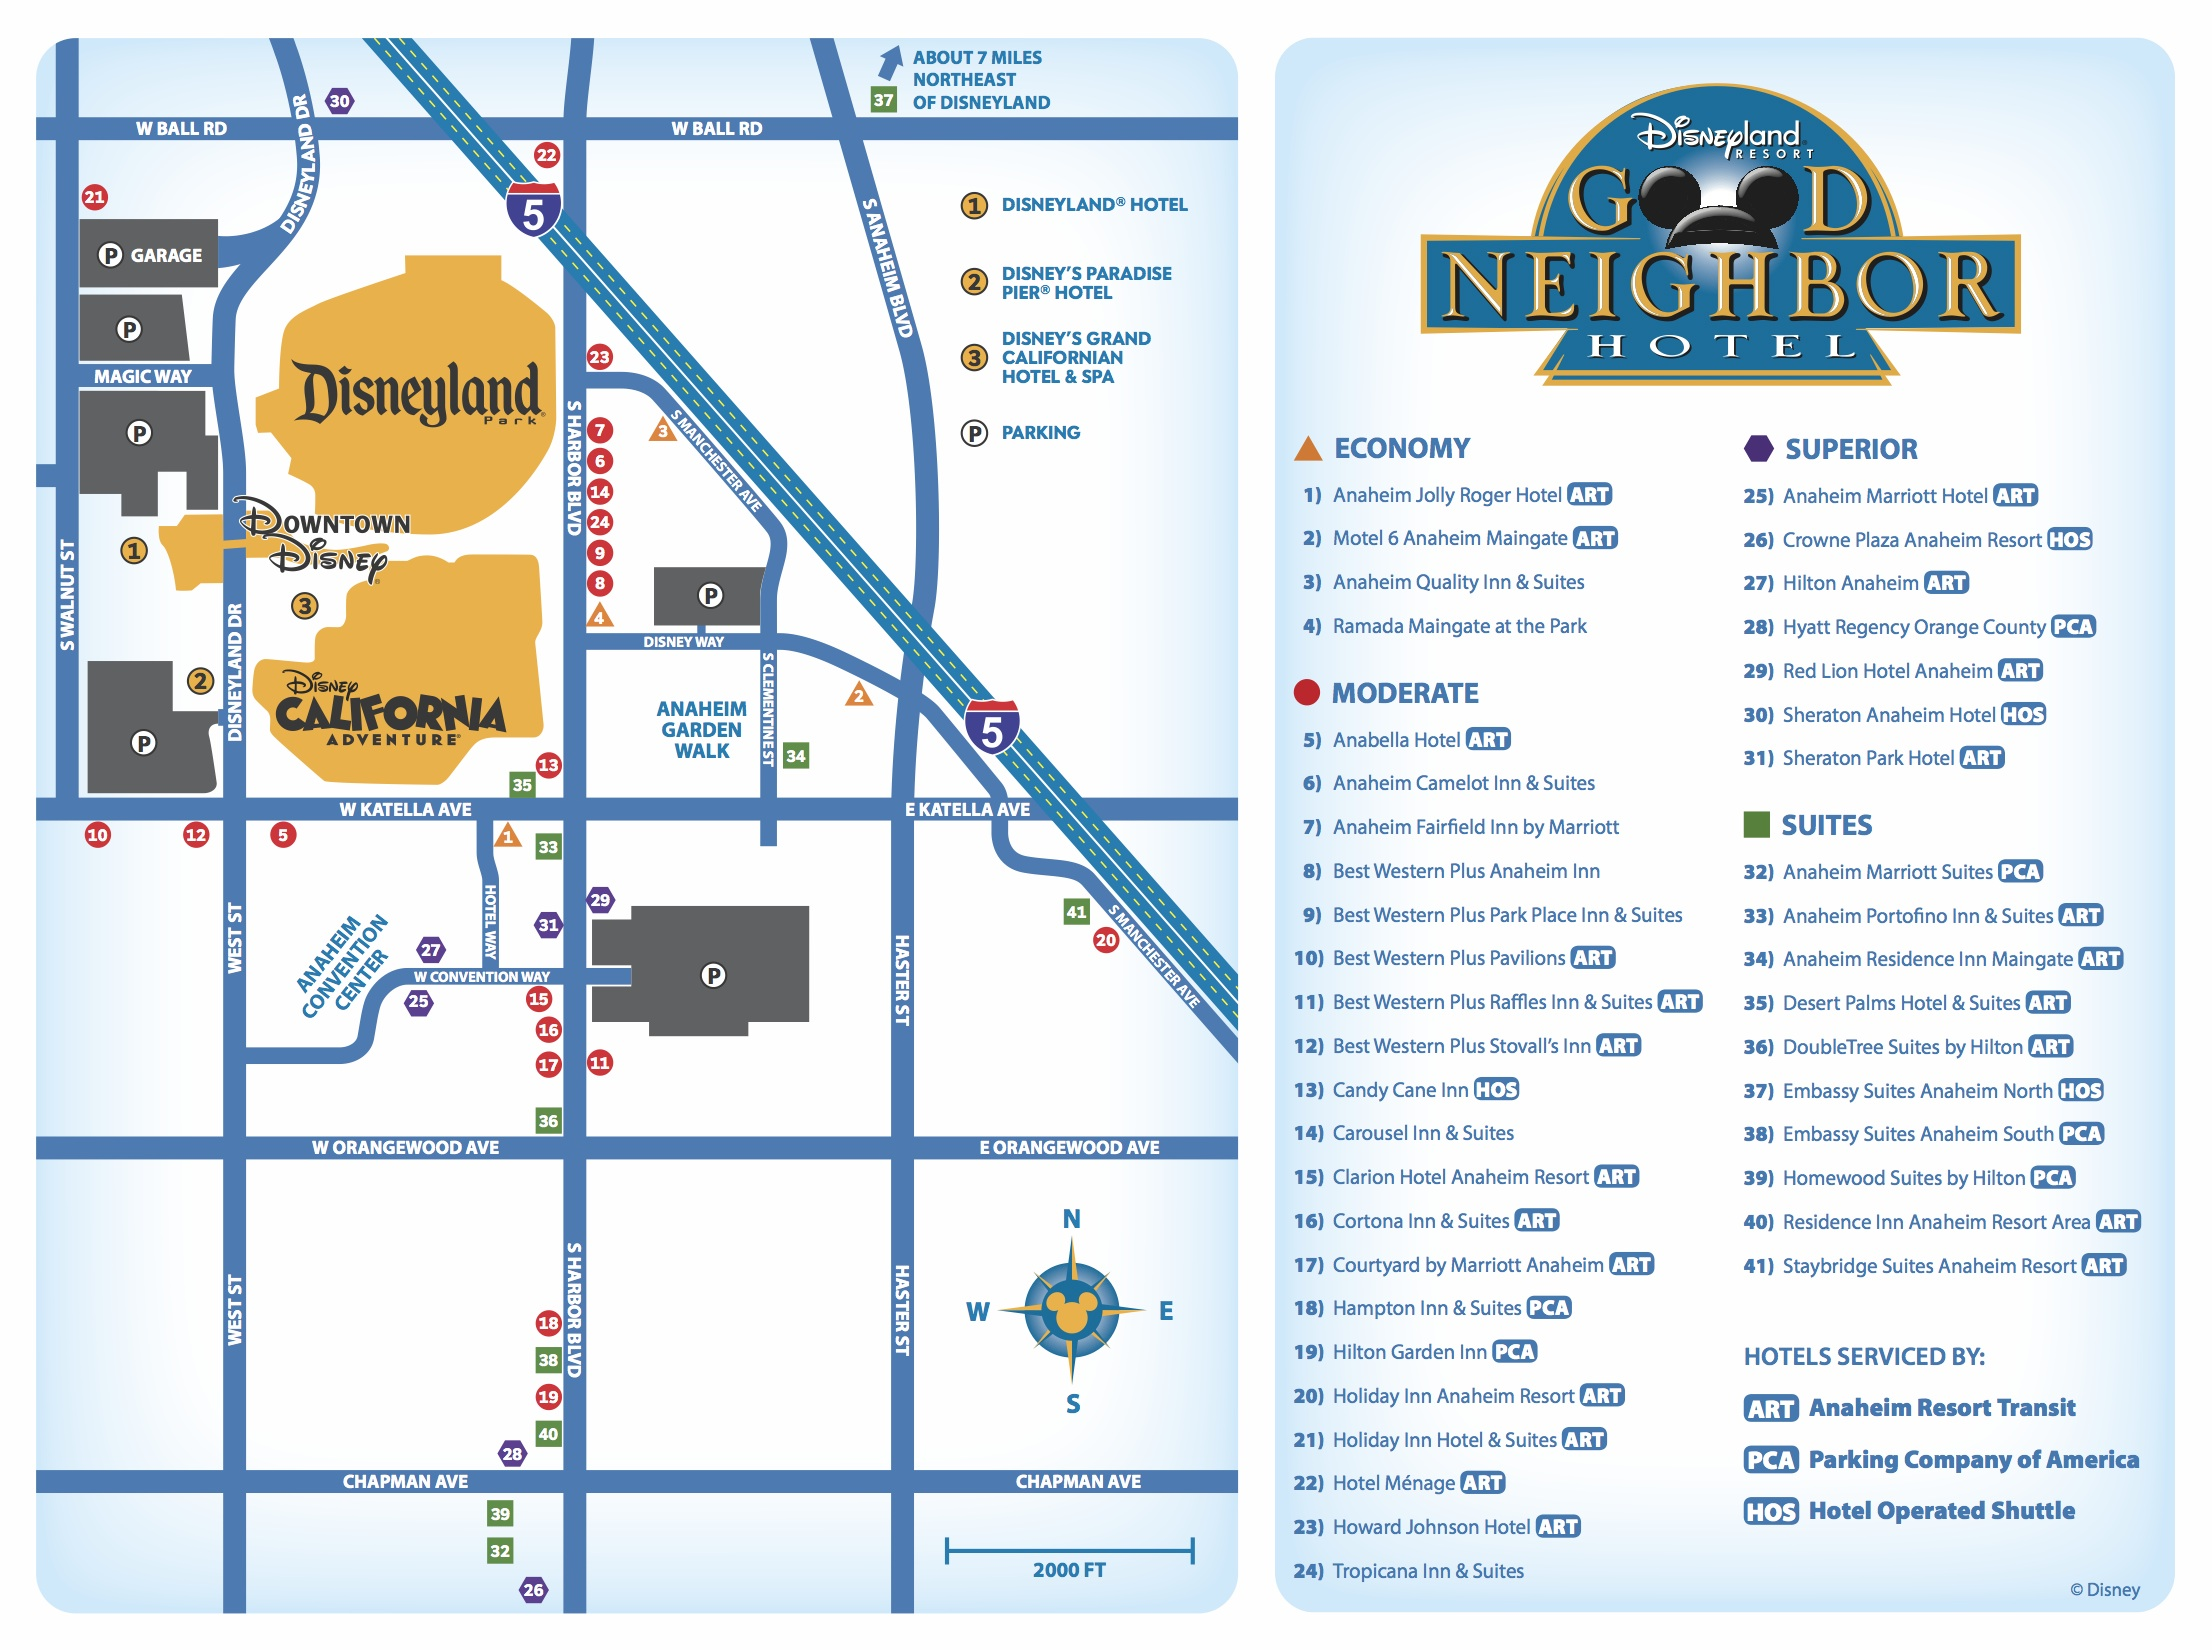 Disneyland Good Neighbor Hotels - Suites - Disney World